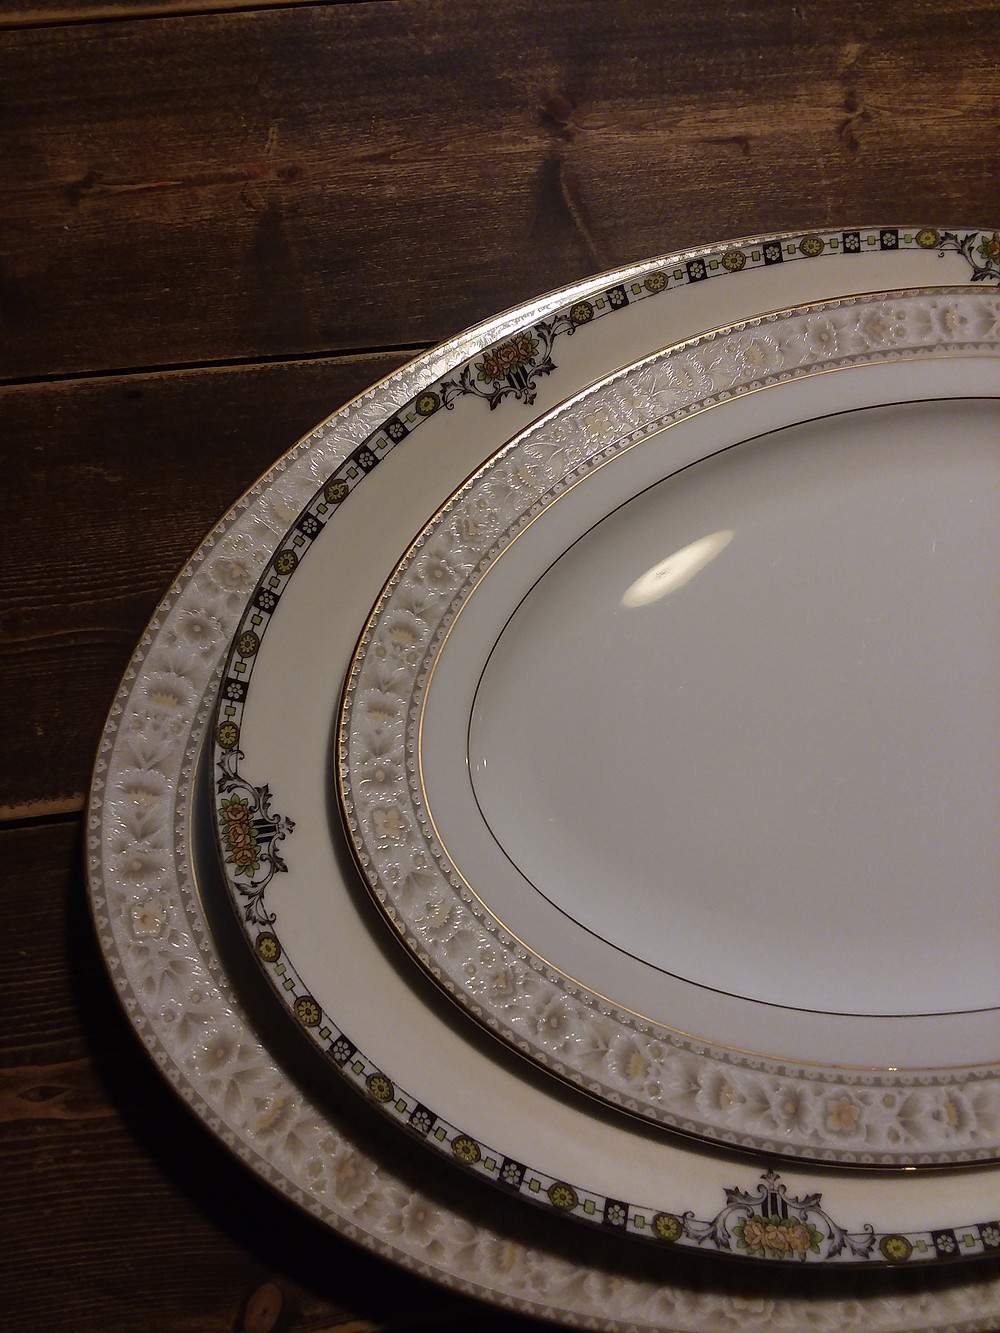 Rental Platters, rental dishes, rental place settings, rental trays